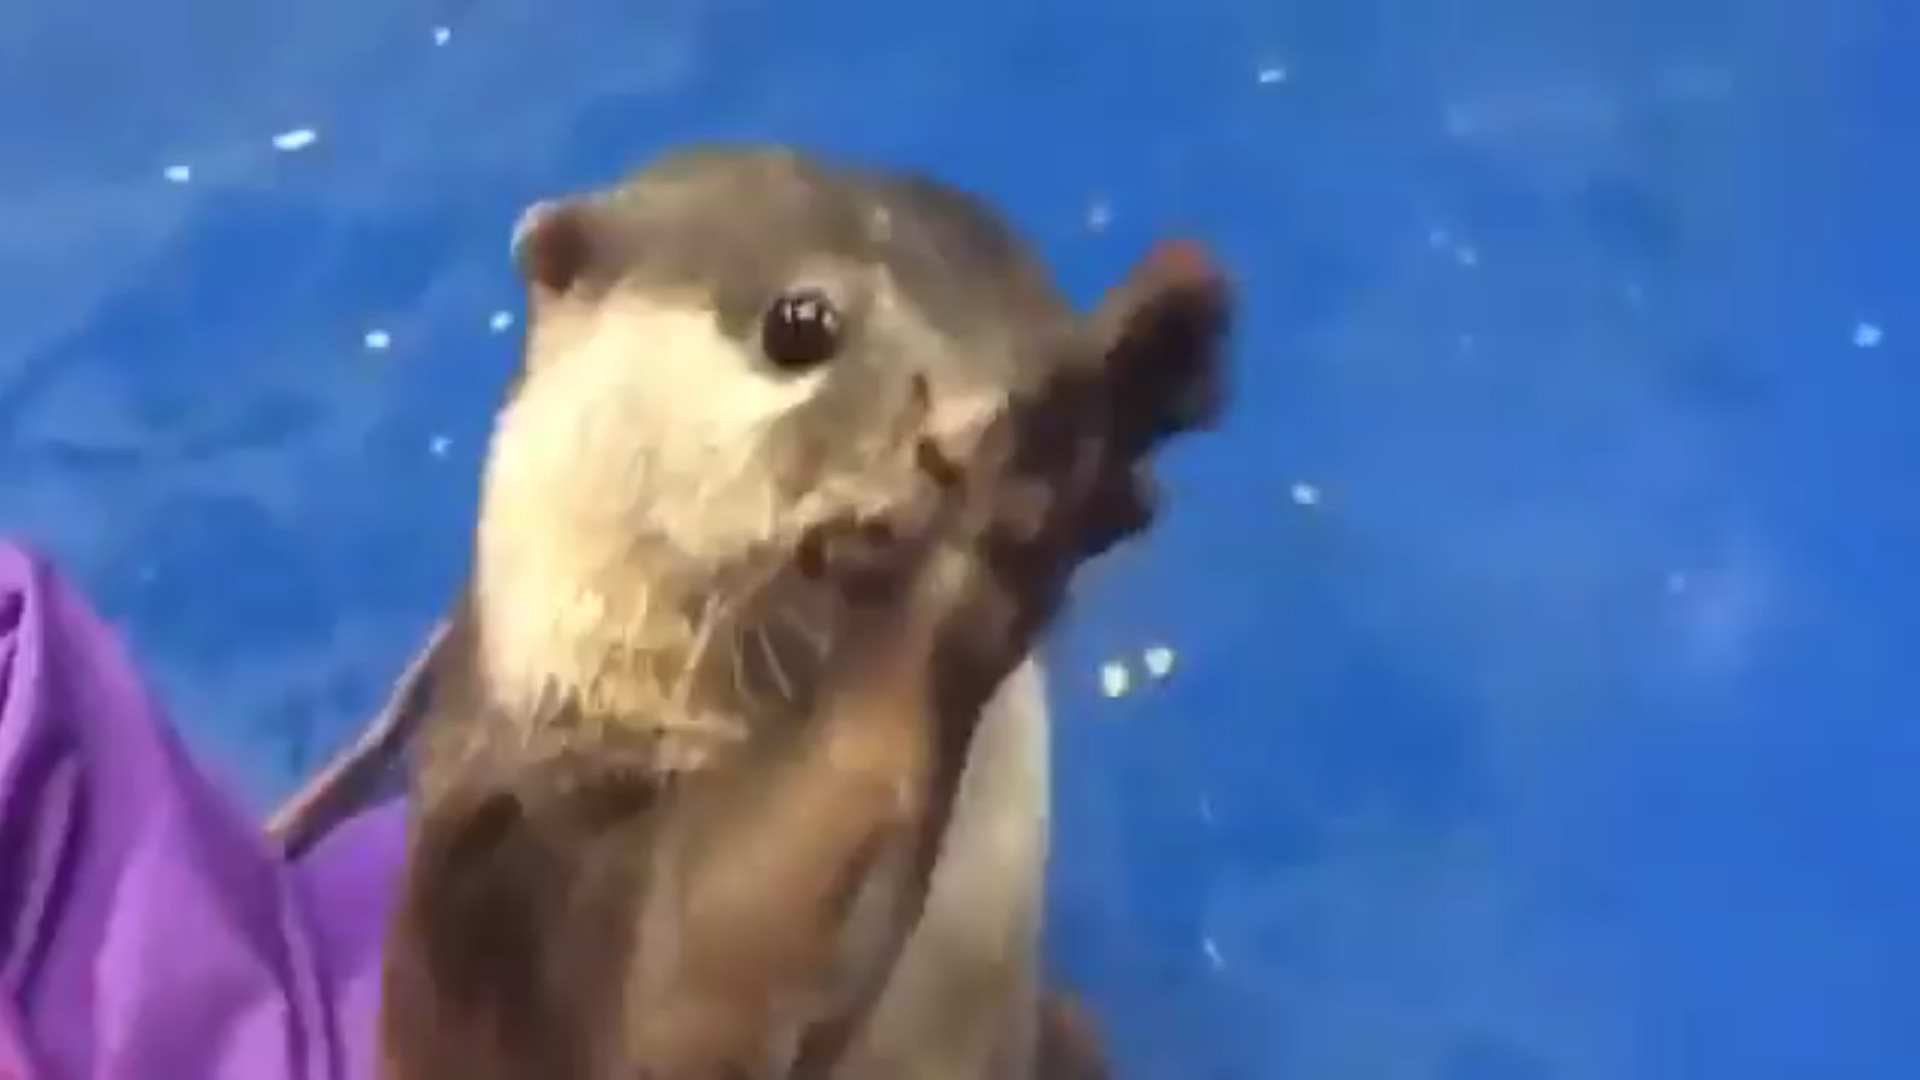 Otter shows how to pet